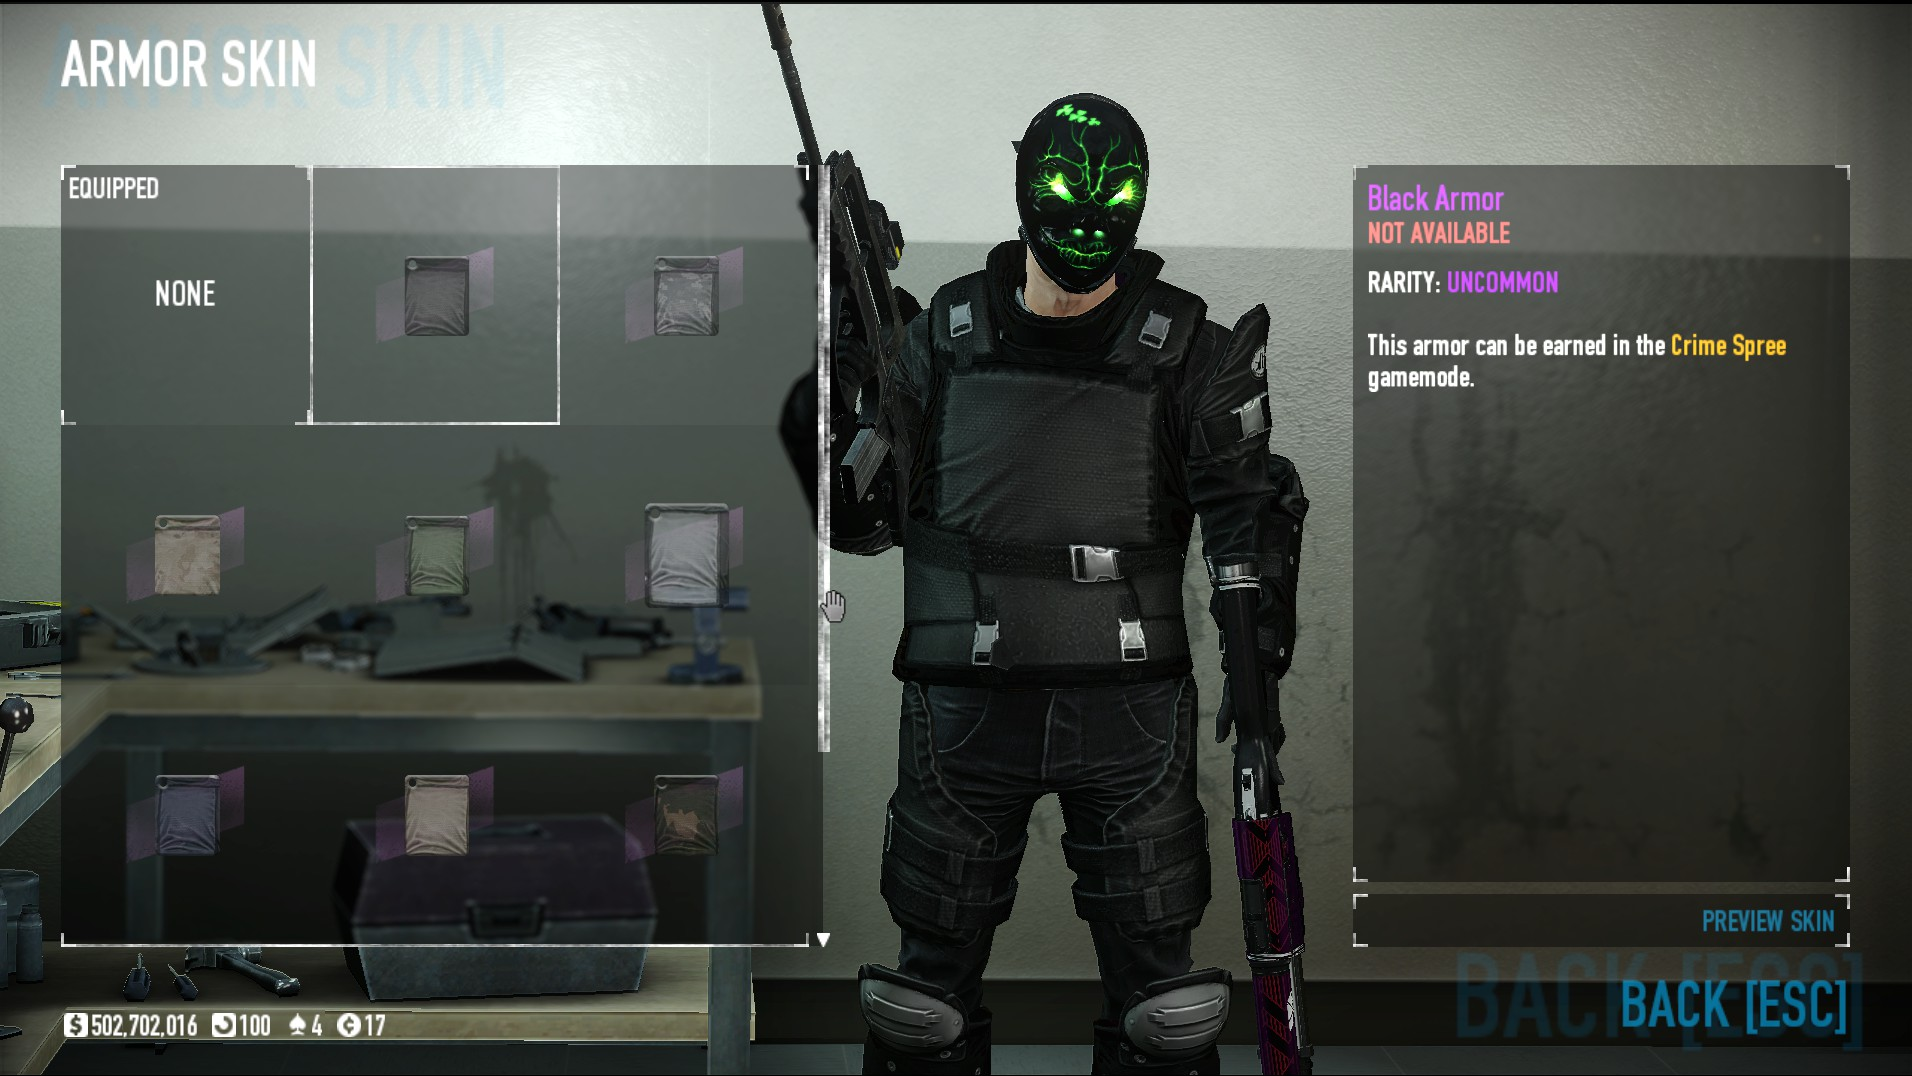 When do the Crime Spree armour skins drop or it it RNG? (NOT